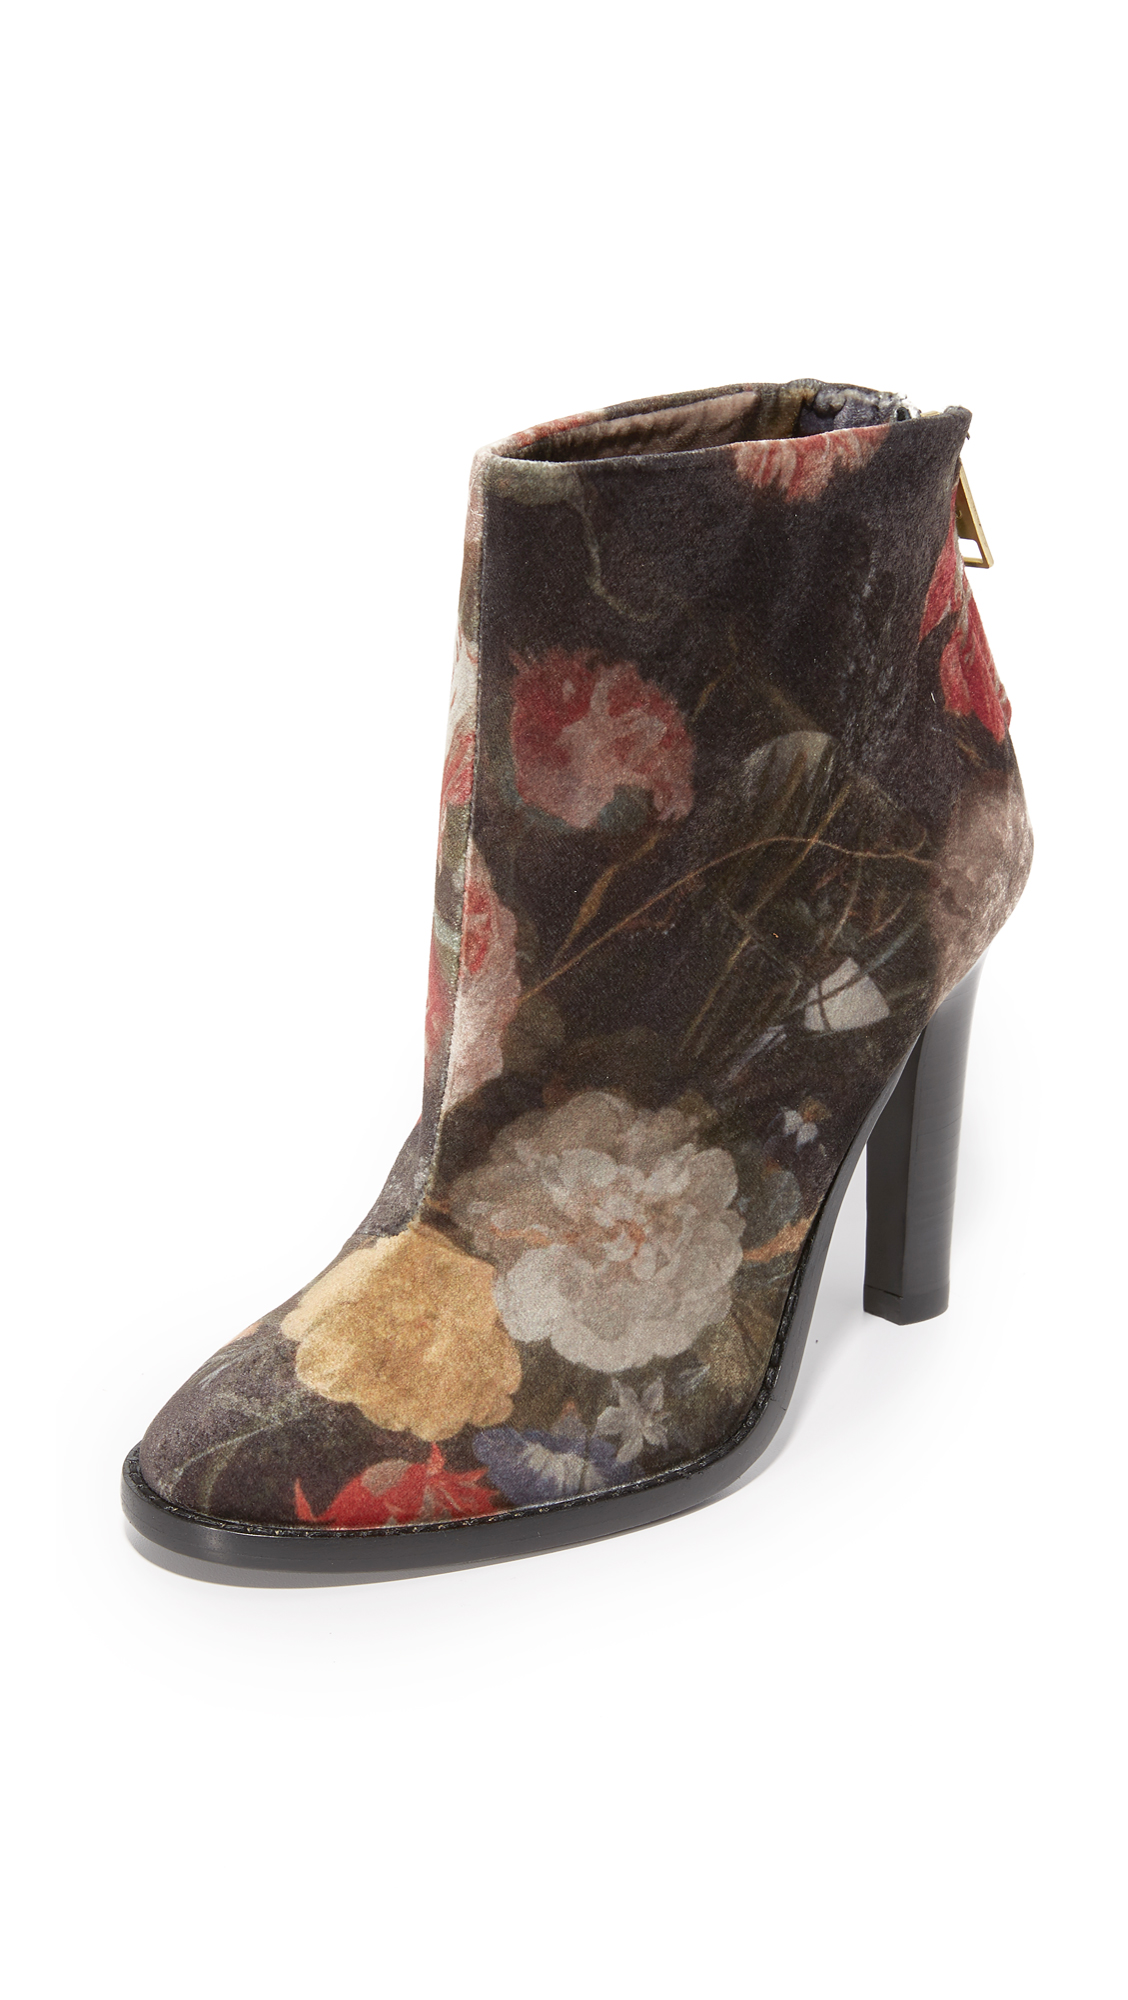 Joie Blayze Floral Booties - Floral